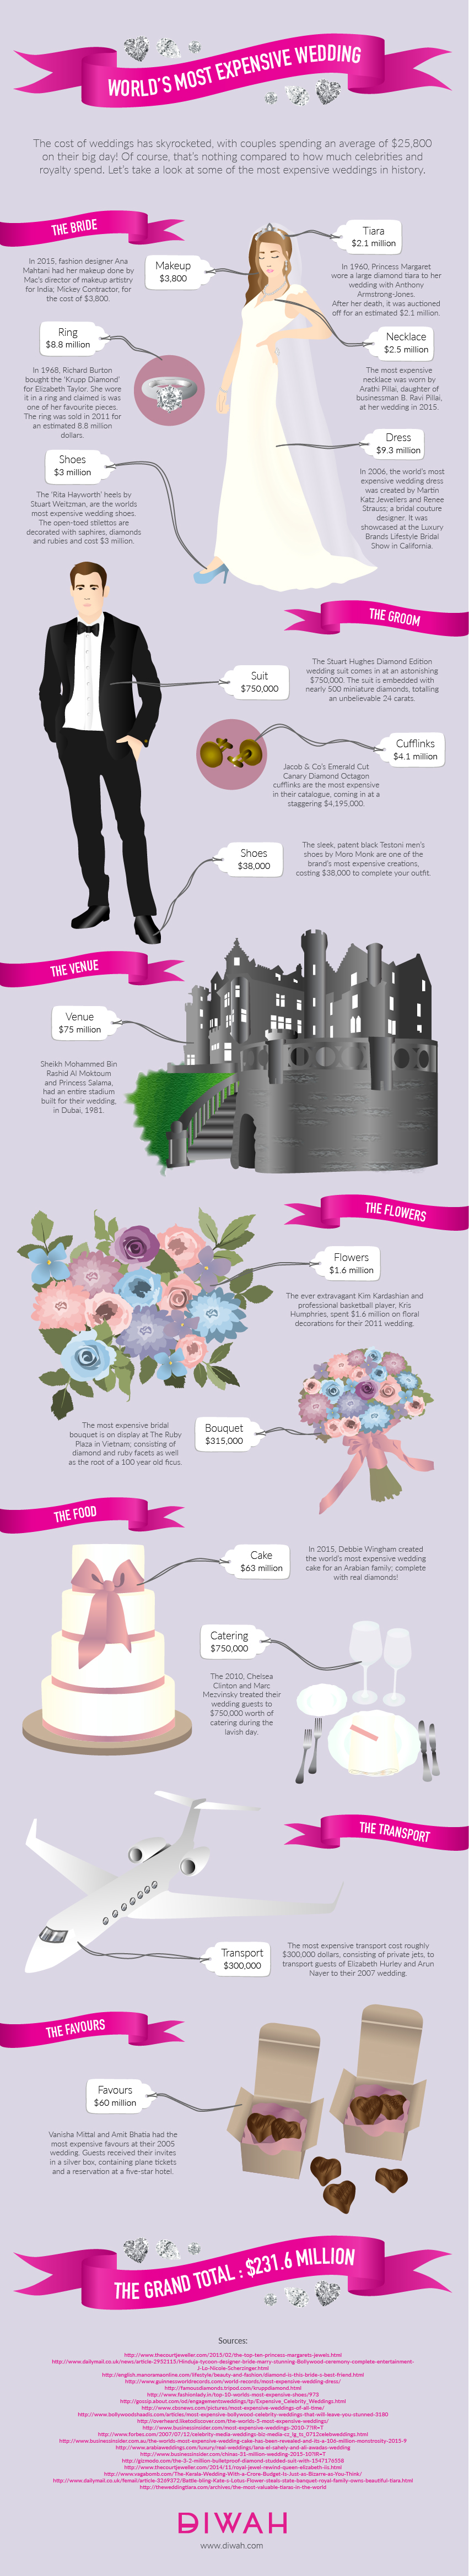 Most Expensive Wedding Infographic